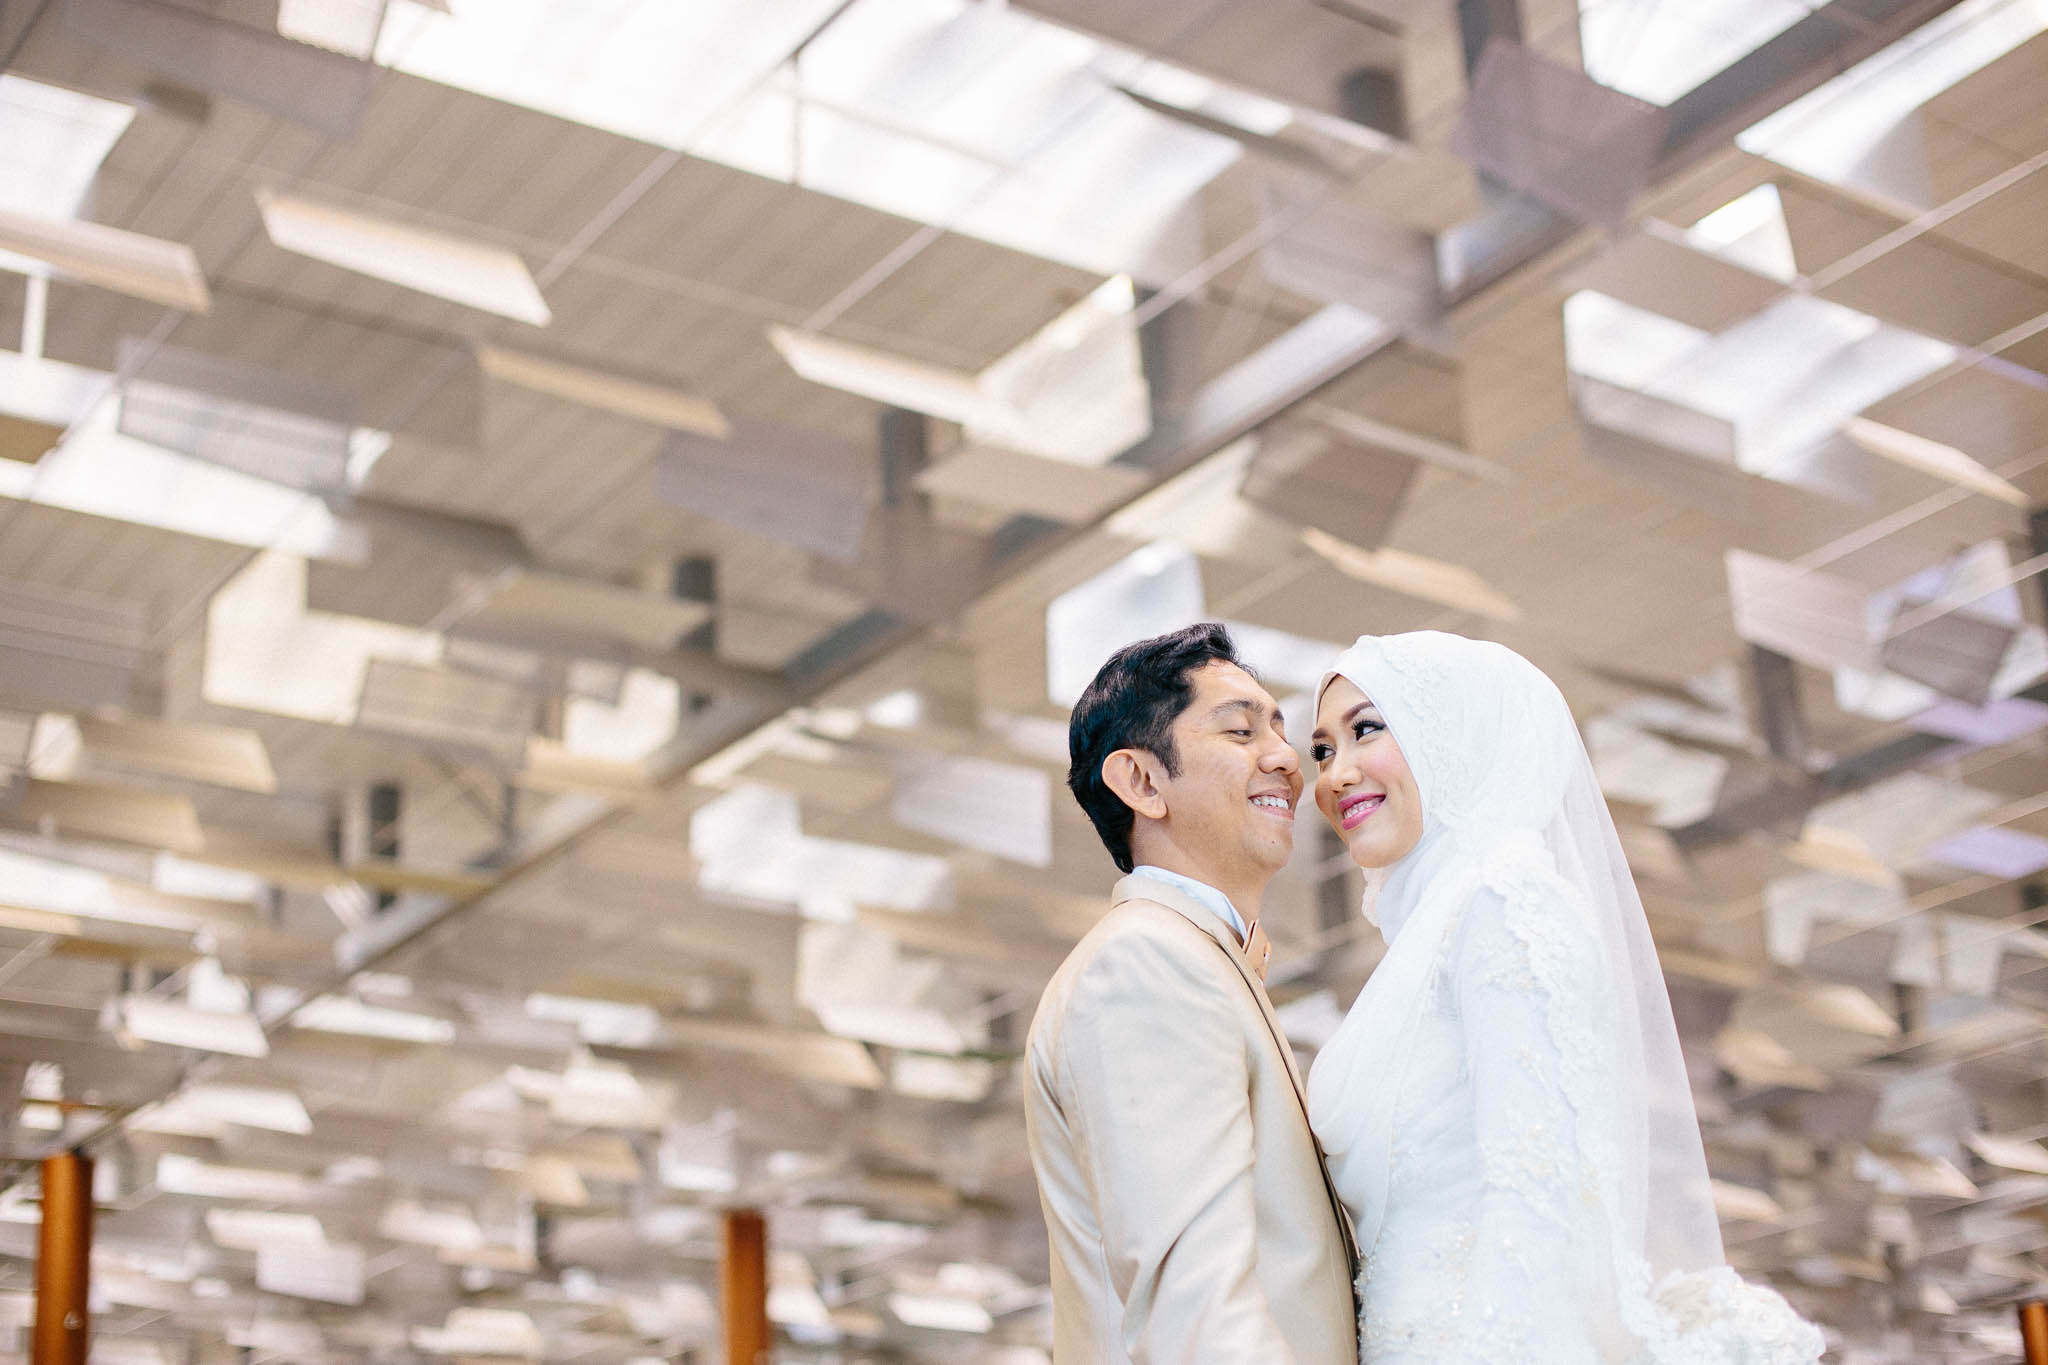 singapore-wedding-photographer-we-made-these-2016-selects-030.jpg